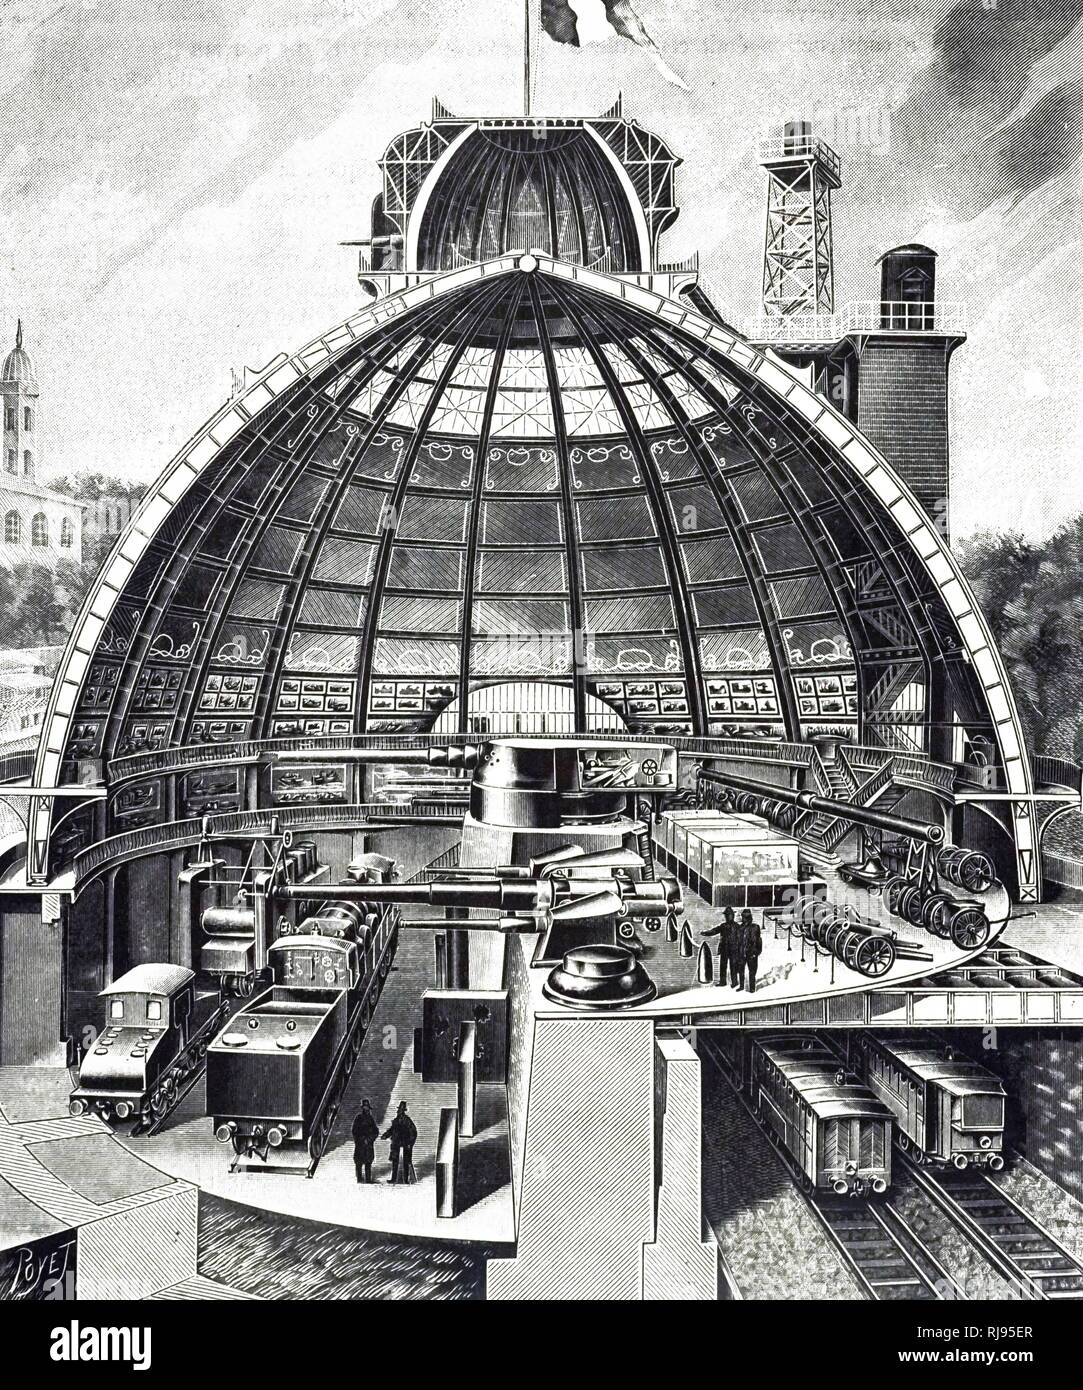 An engraving depicting a cut-away view of the Schneider Company's pavilion. Dated 20th century - Stock Image